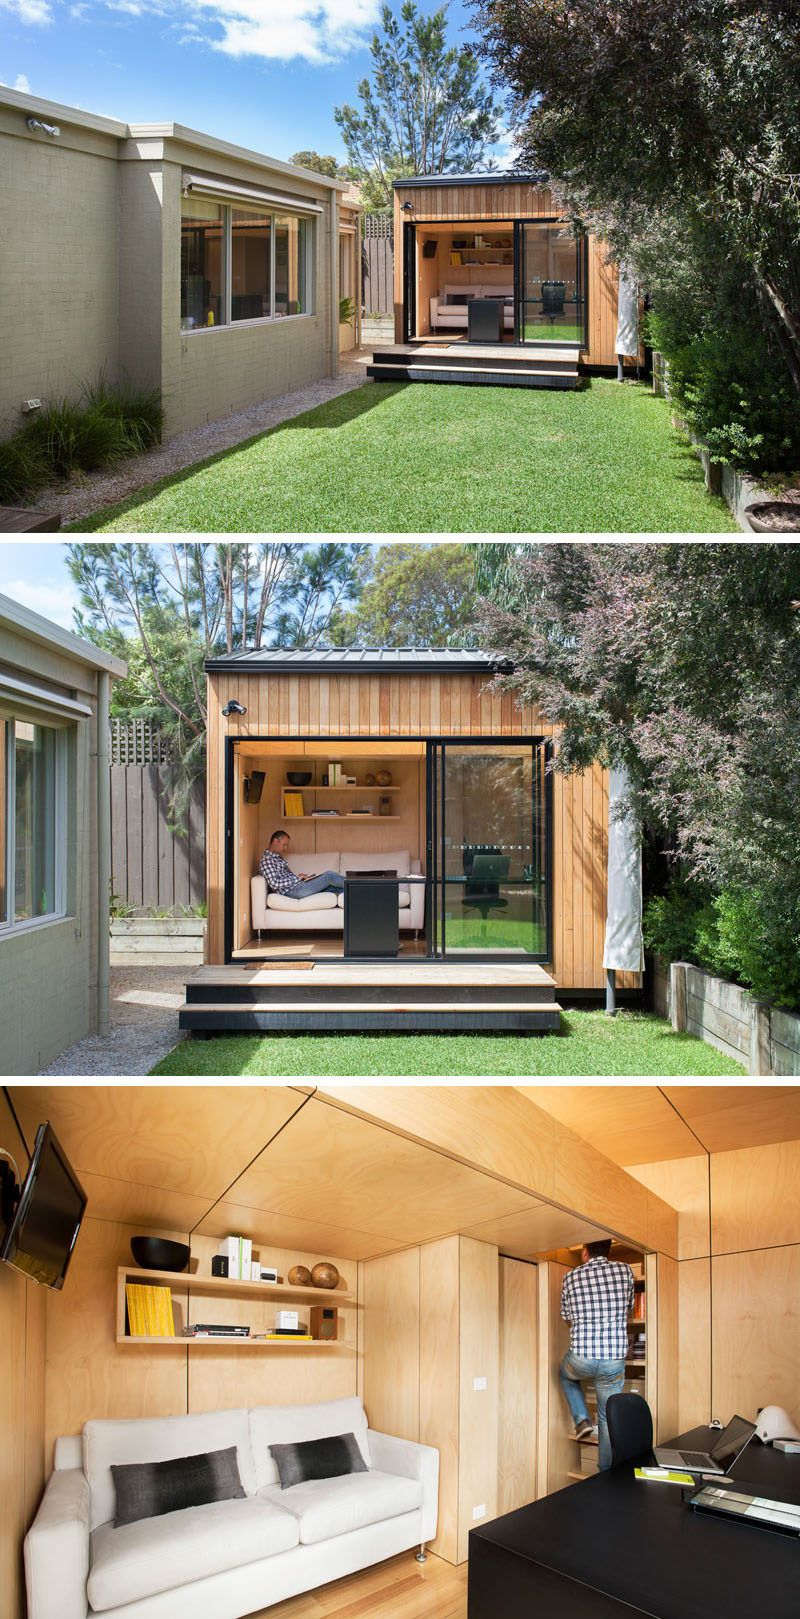 This small backyard studio has been carefully designed to accommodate a  couch, a work space, and a lofted sleeping area to create the ultimate  backyard ... - 14 Inspirational Backyard Offices, Studios And Guest Houses Tiny